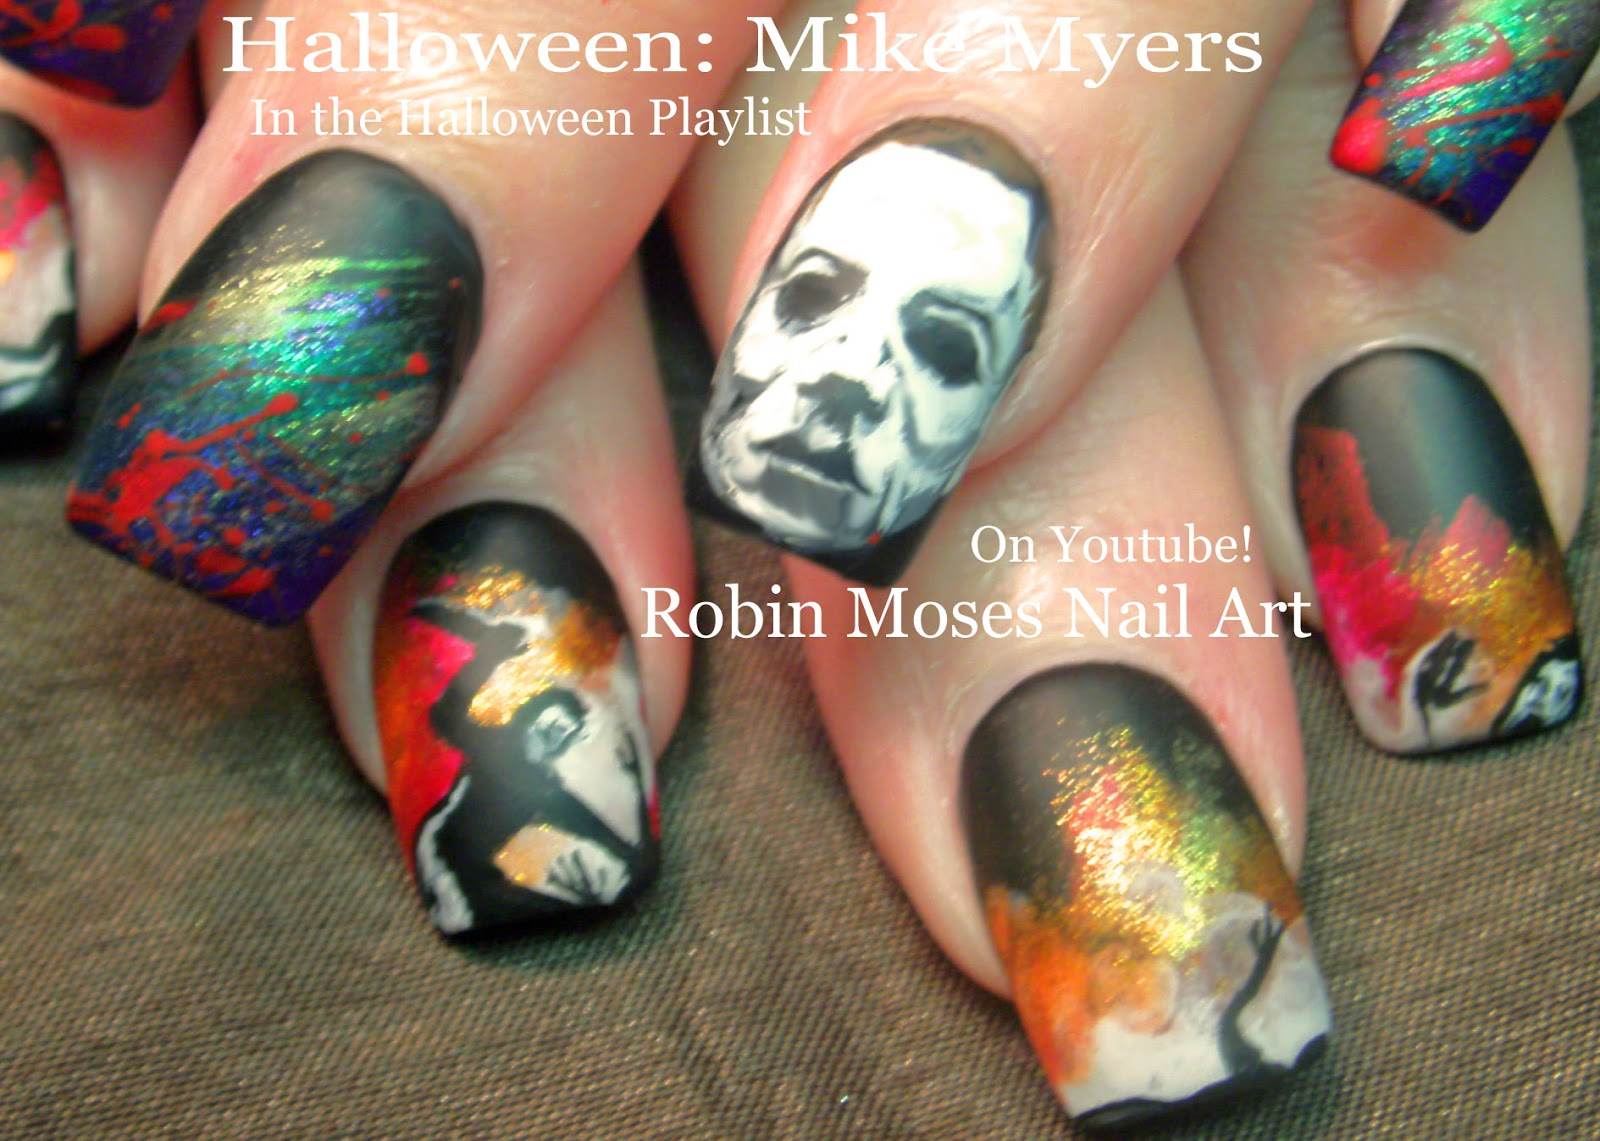 Robin moses nail art halloween mike myers nail art horror film halloween mike myers nail art horror film nails and scary movie nails that will get your hands grabbed prinsesfo Gallery